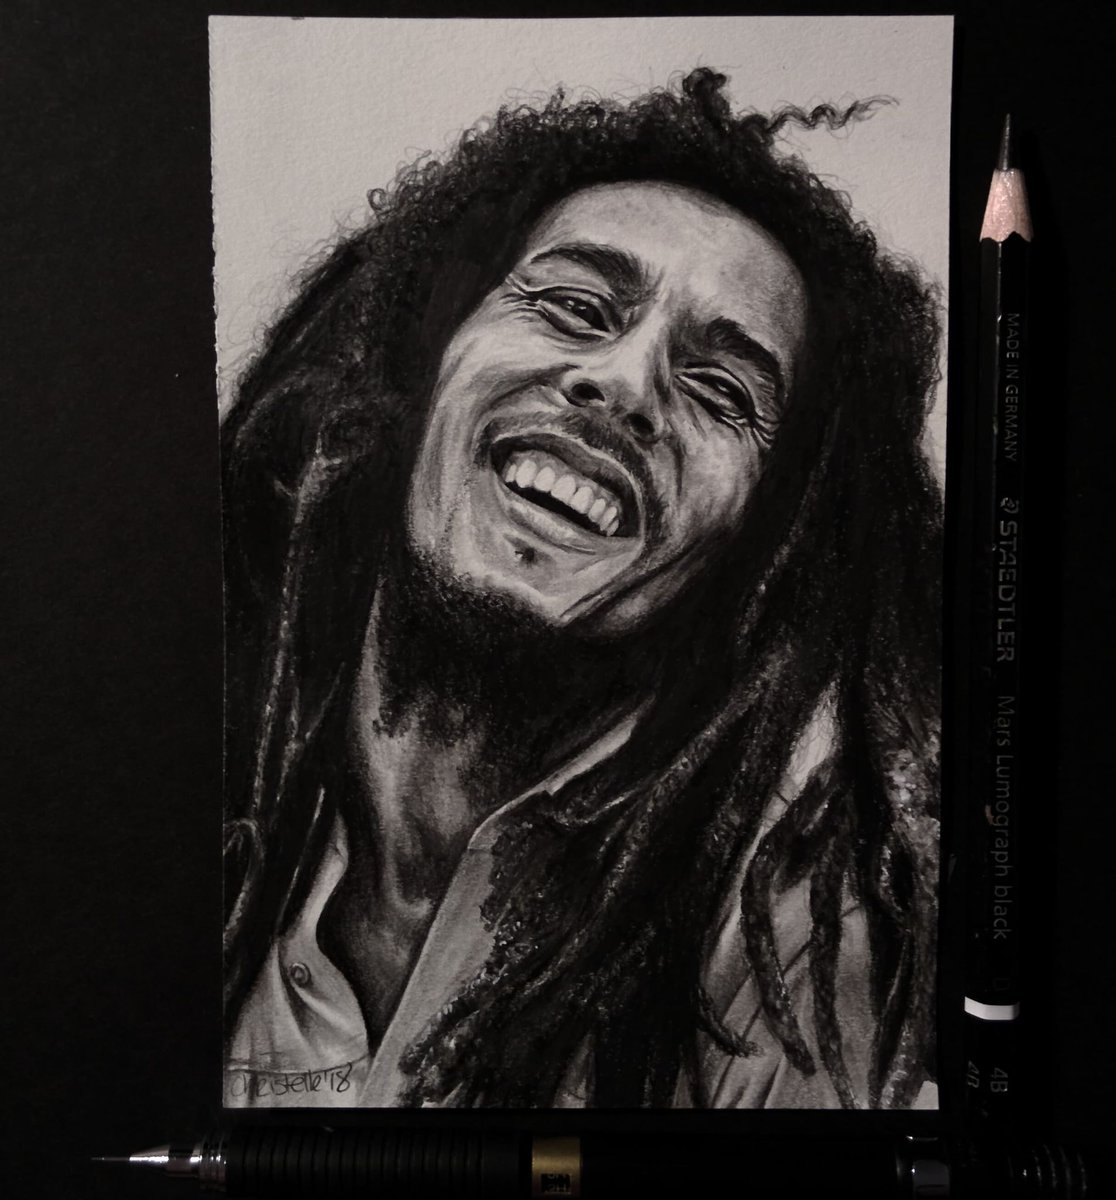 Christelle bilodeau on twitter mini drawing of bobmarley